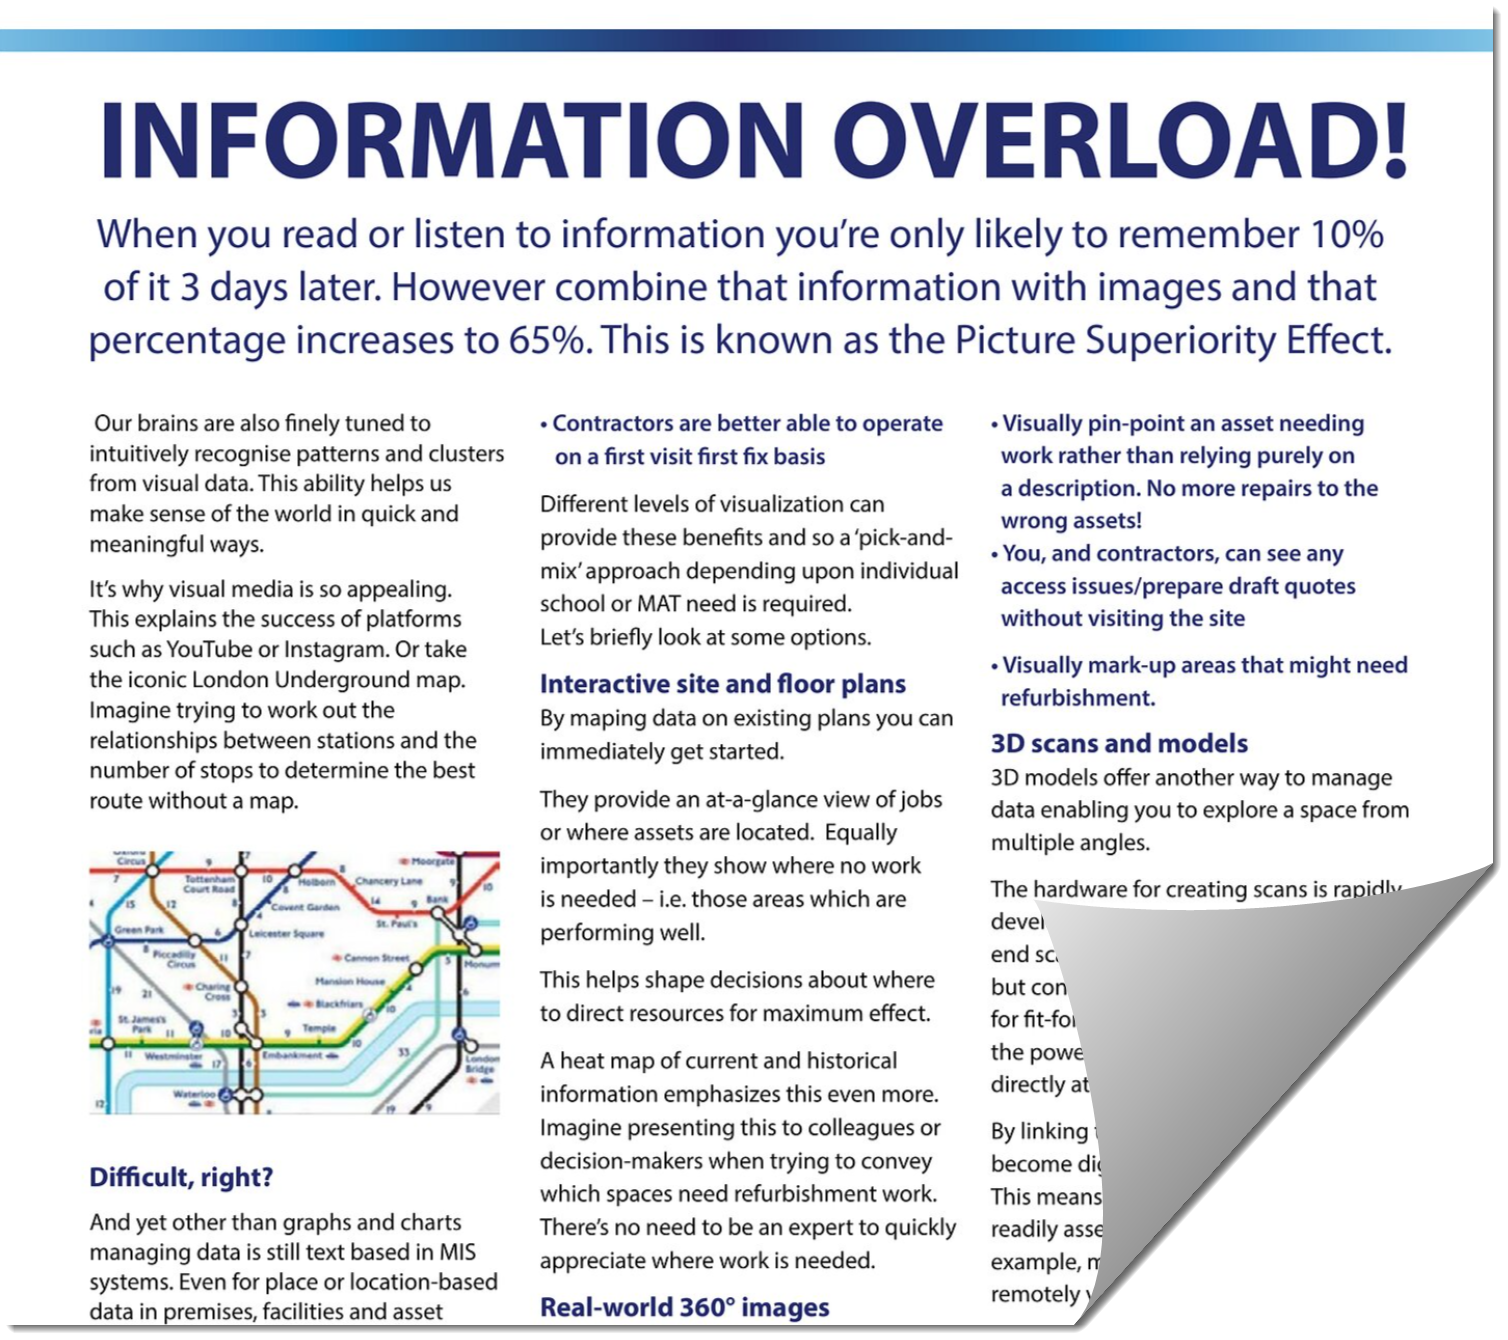 Image showing article about Information overload in facilities management